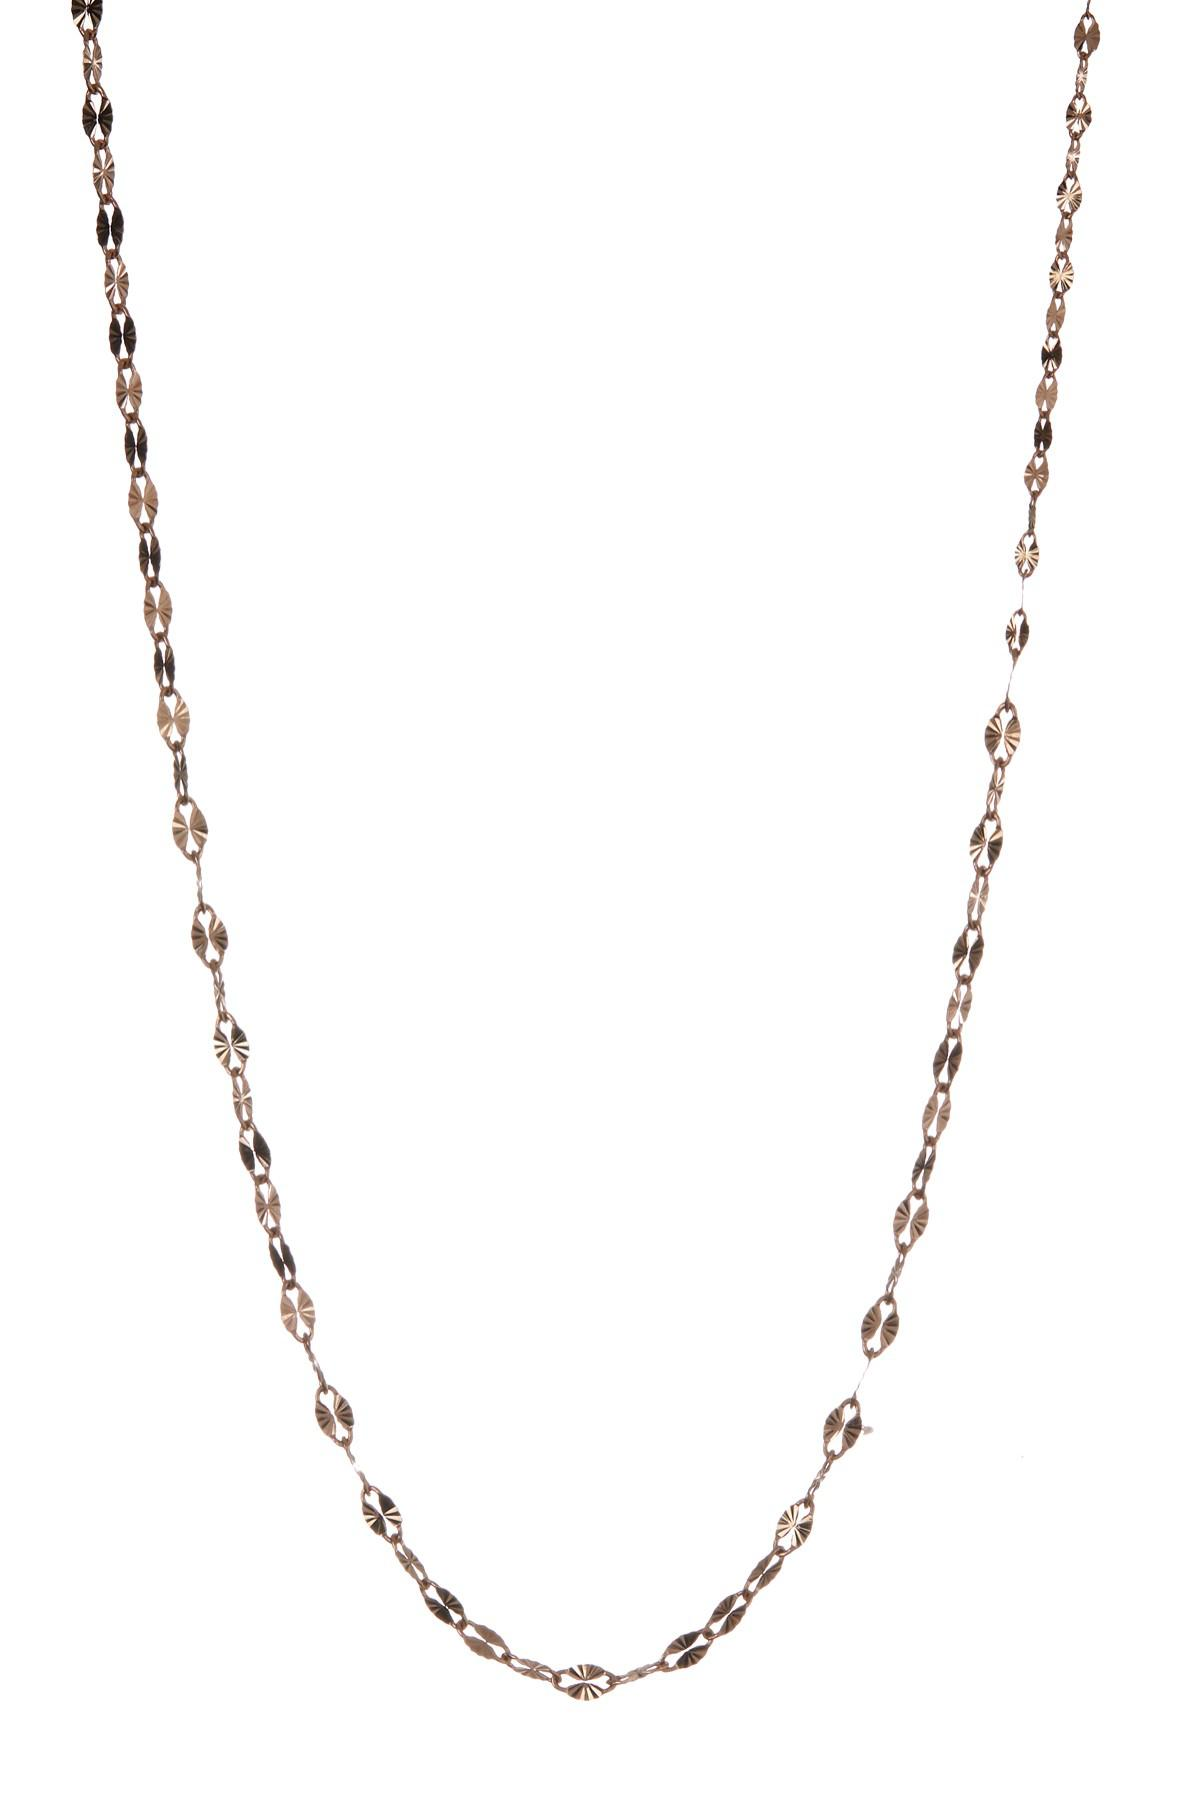 Lyst Lana Jewelry 14k Rose Gold Single Strand Necklace in Metallic